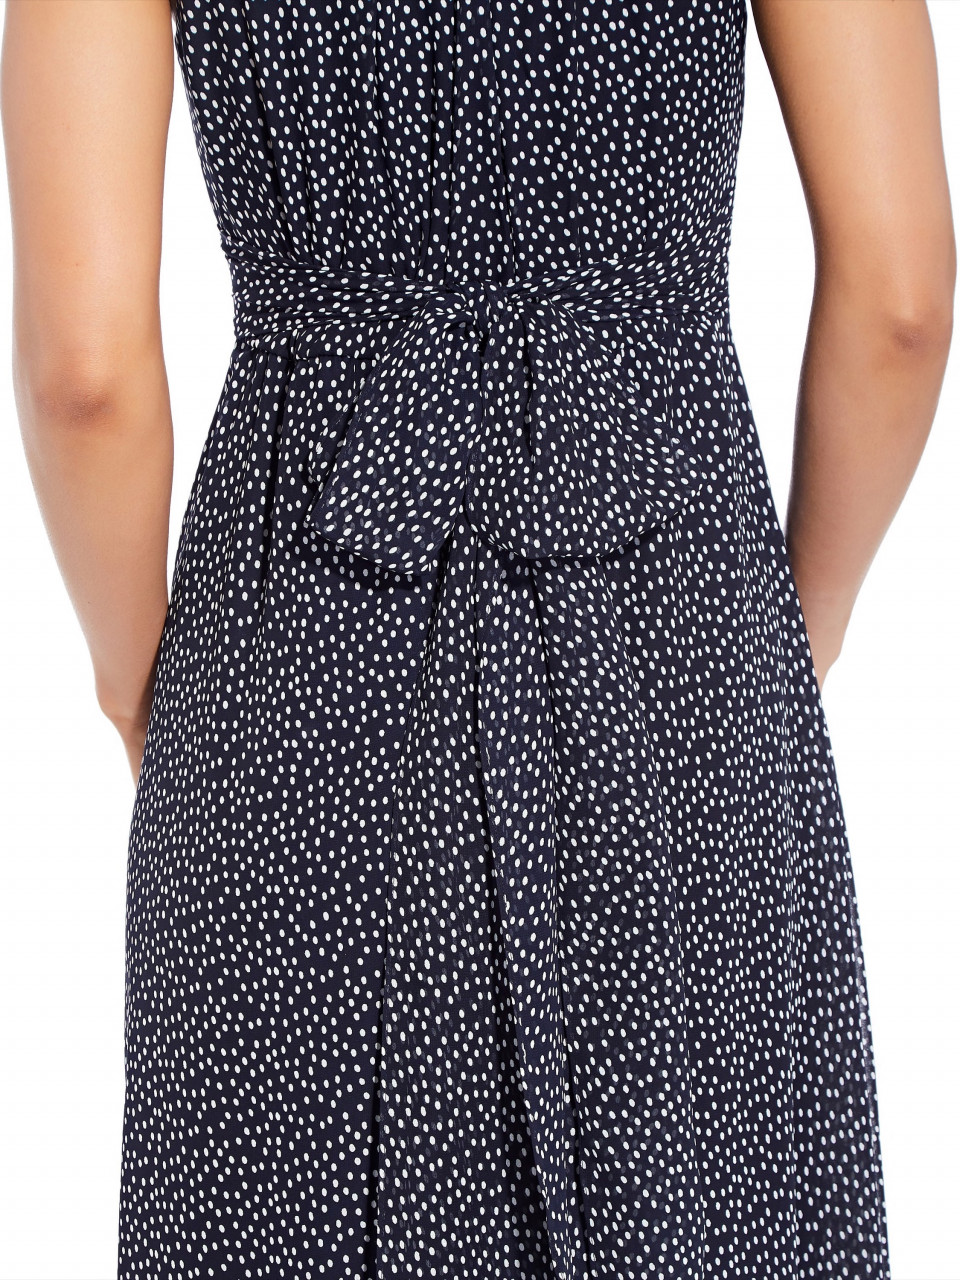 Darling dot midi dress